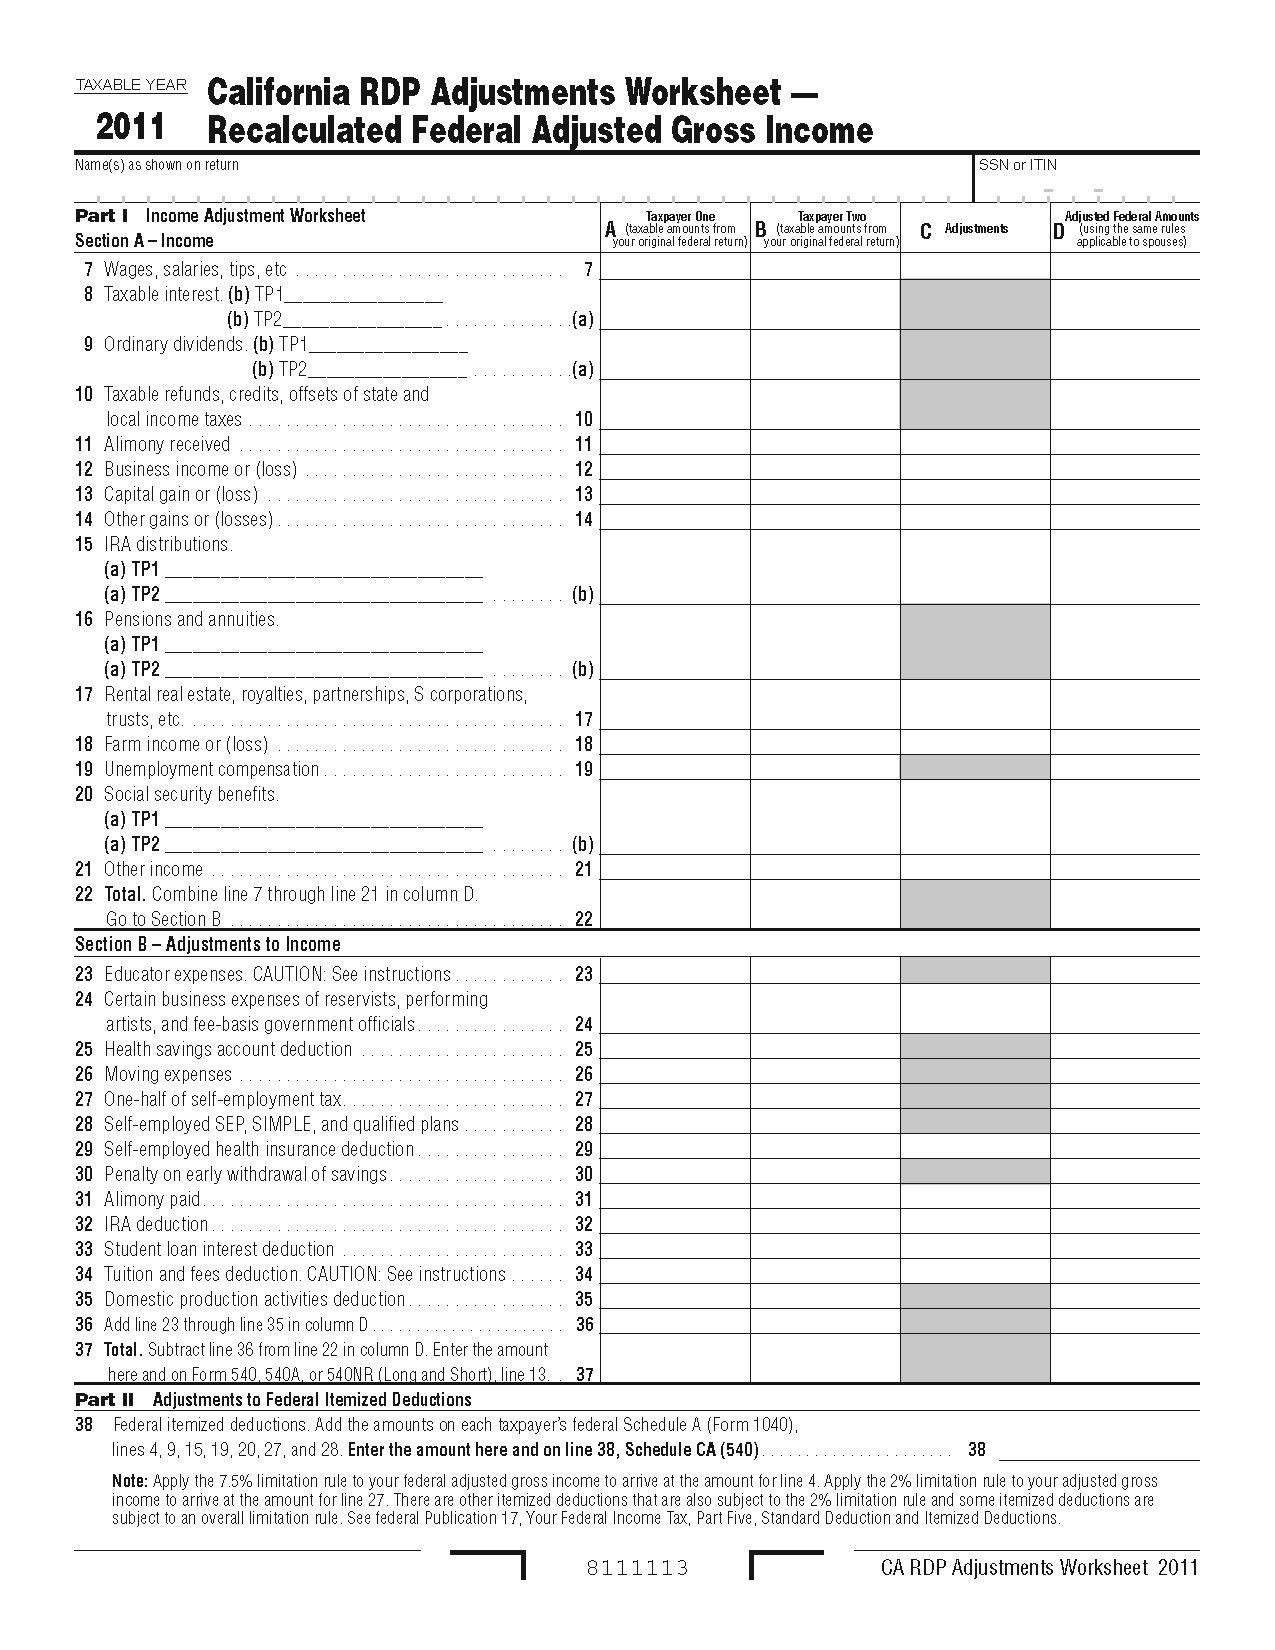 Income Tax Worksheet and 737 Worksheet form California Registered Domestic Partners